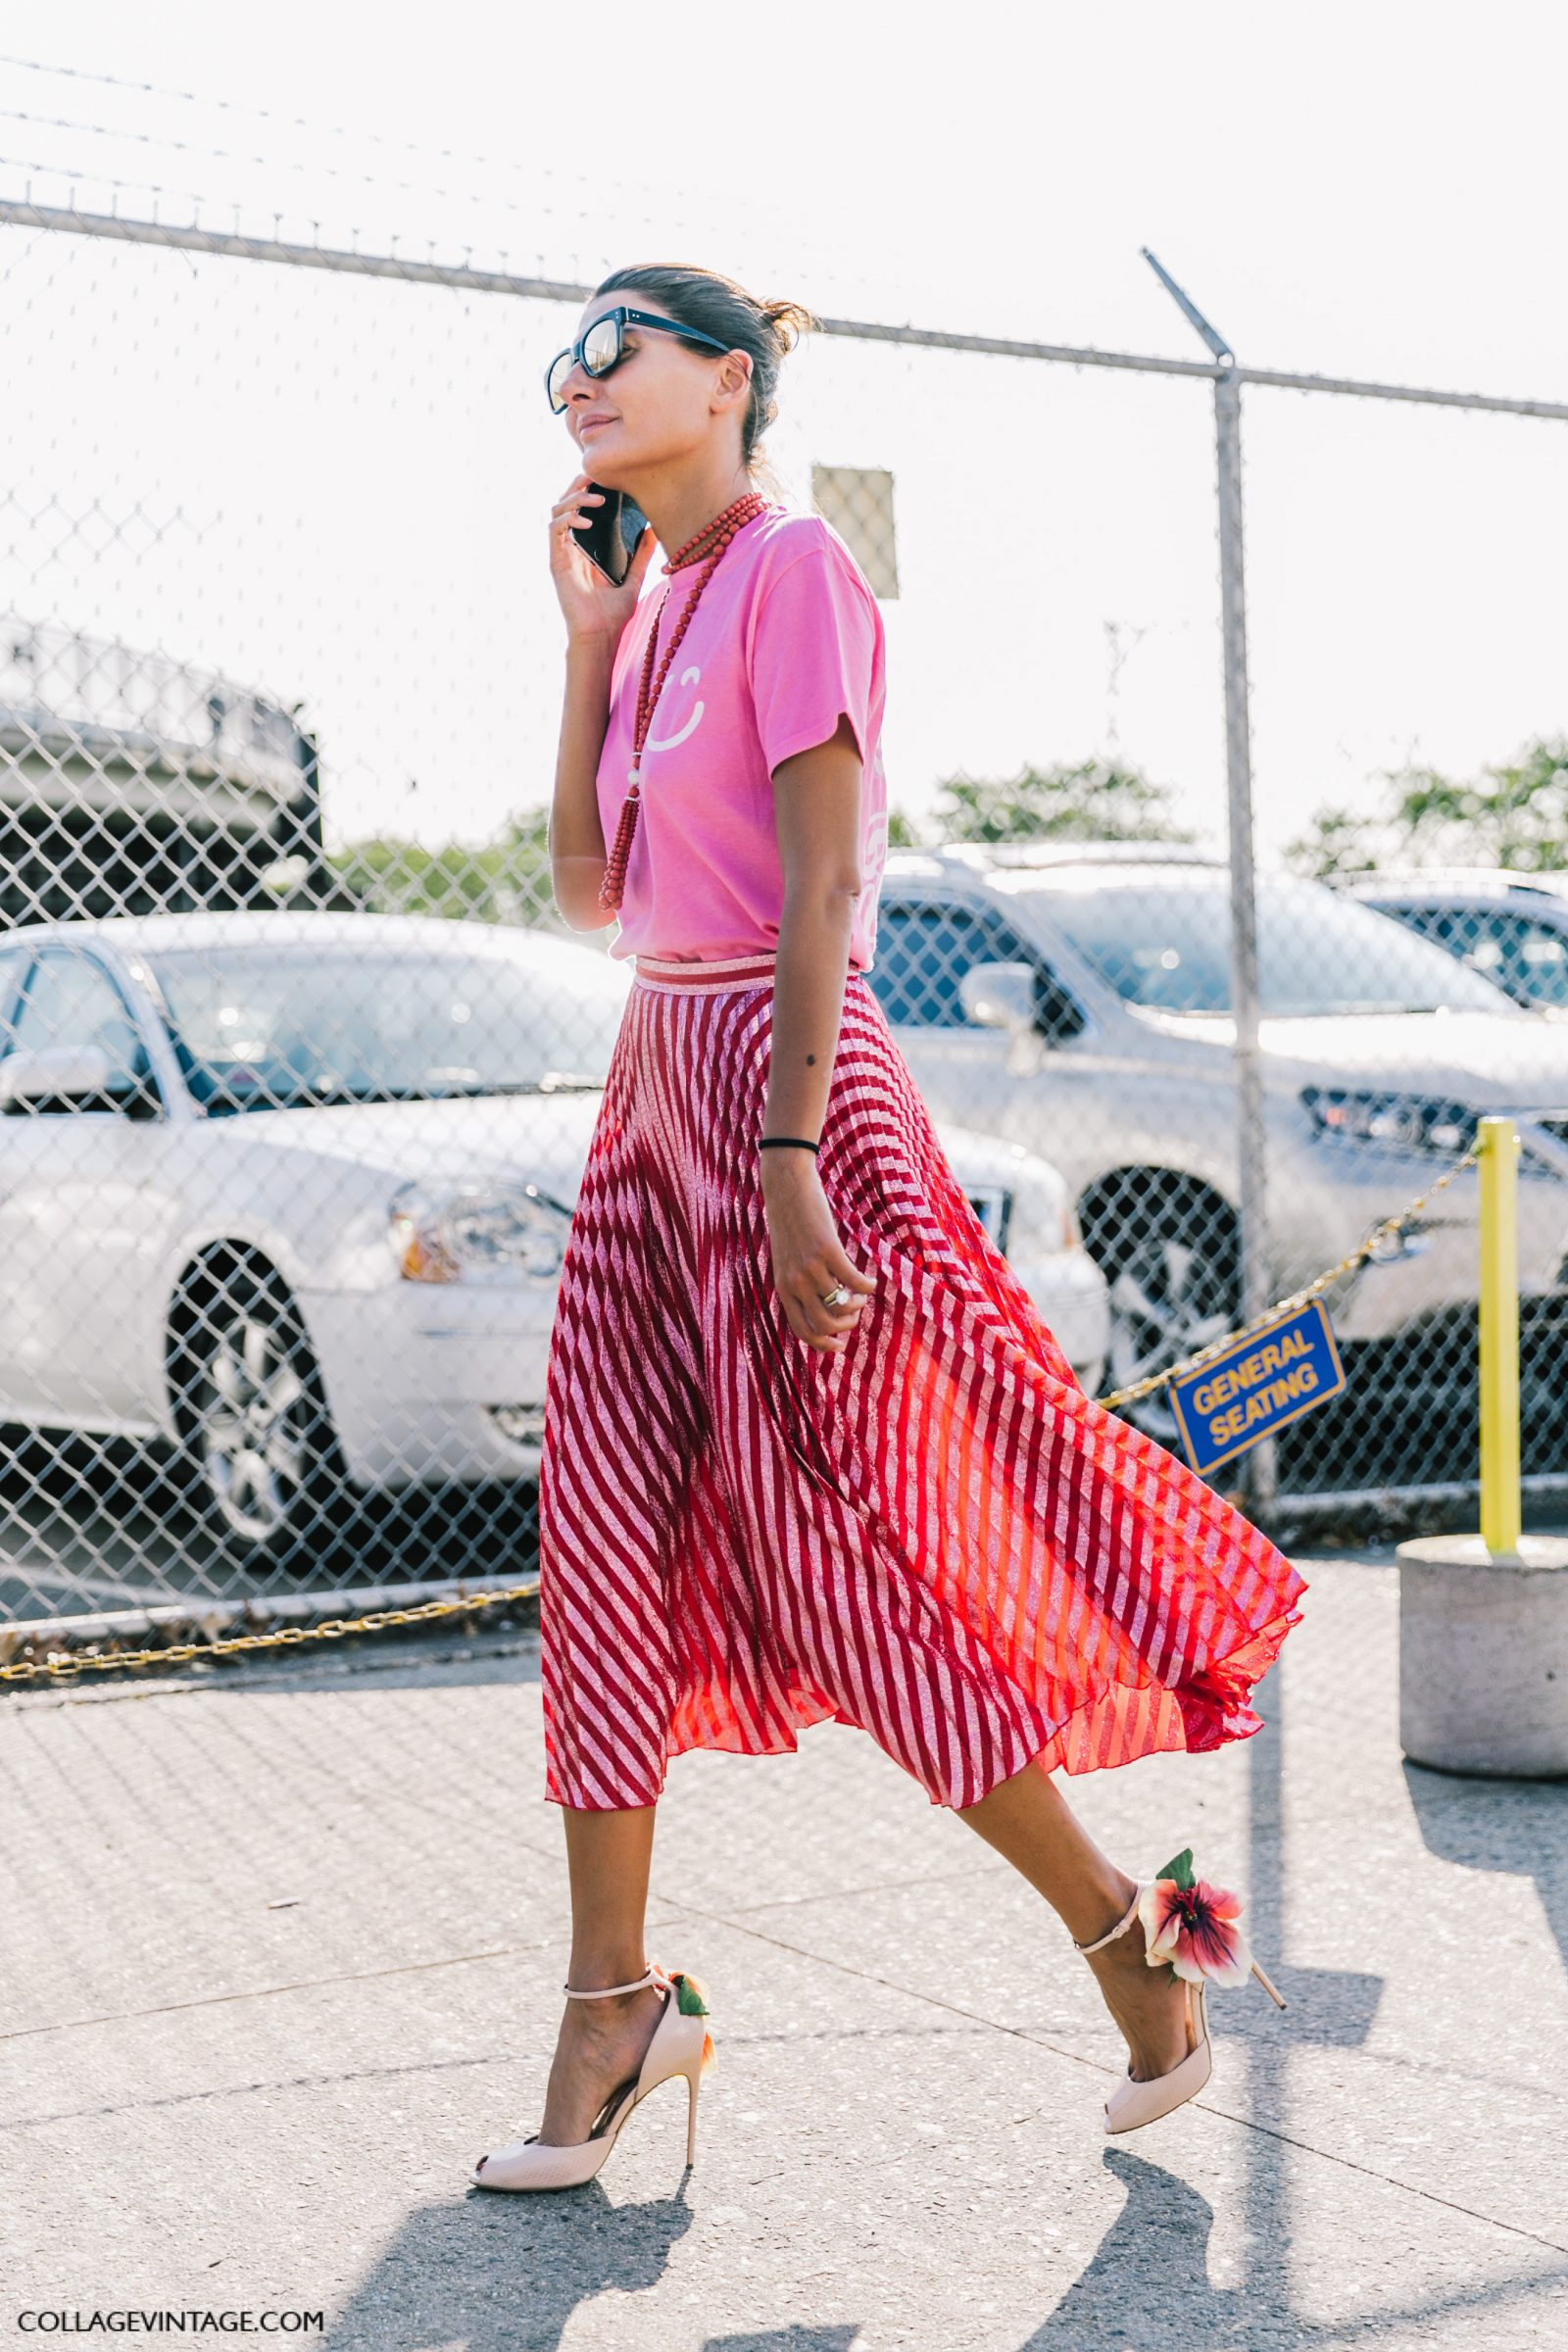 nyfw-new_york_fashion_week_ss17-street_style-outfits-collage_vintage-vintage-mansur_gavriel-rodarte-coach-187